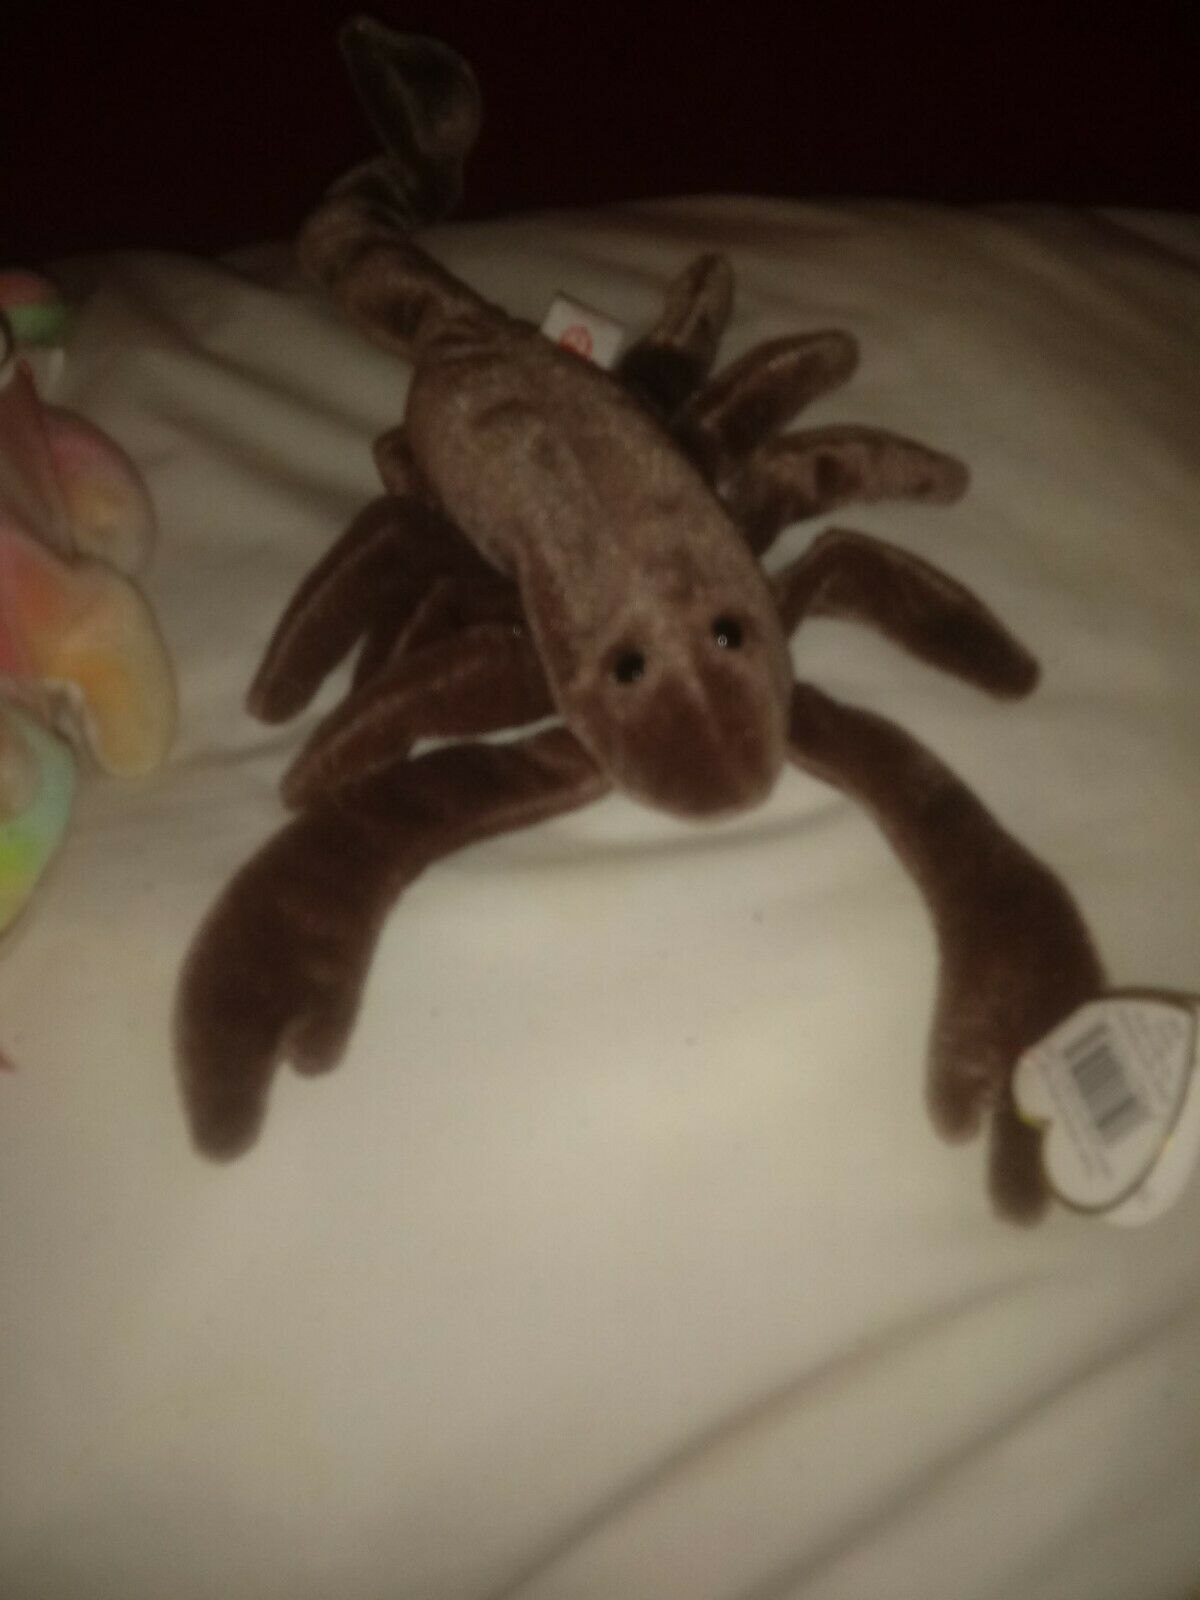 Ty RARE MINT CONDITION BEANIE BABIES PLUS MORE PHOTOS PHOTOS PHOTOS TO COME OF OTHERS 80e756